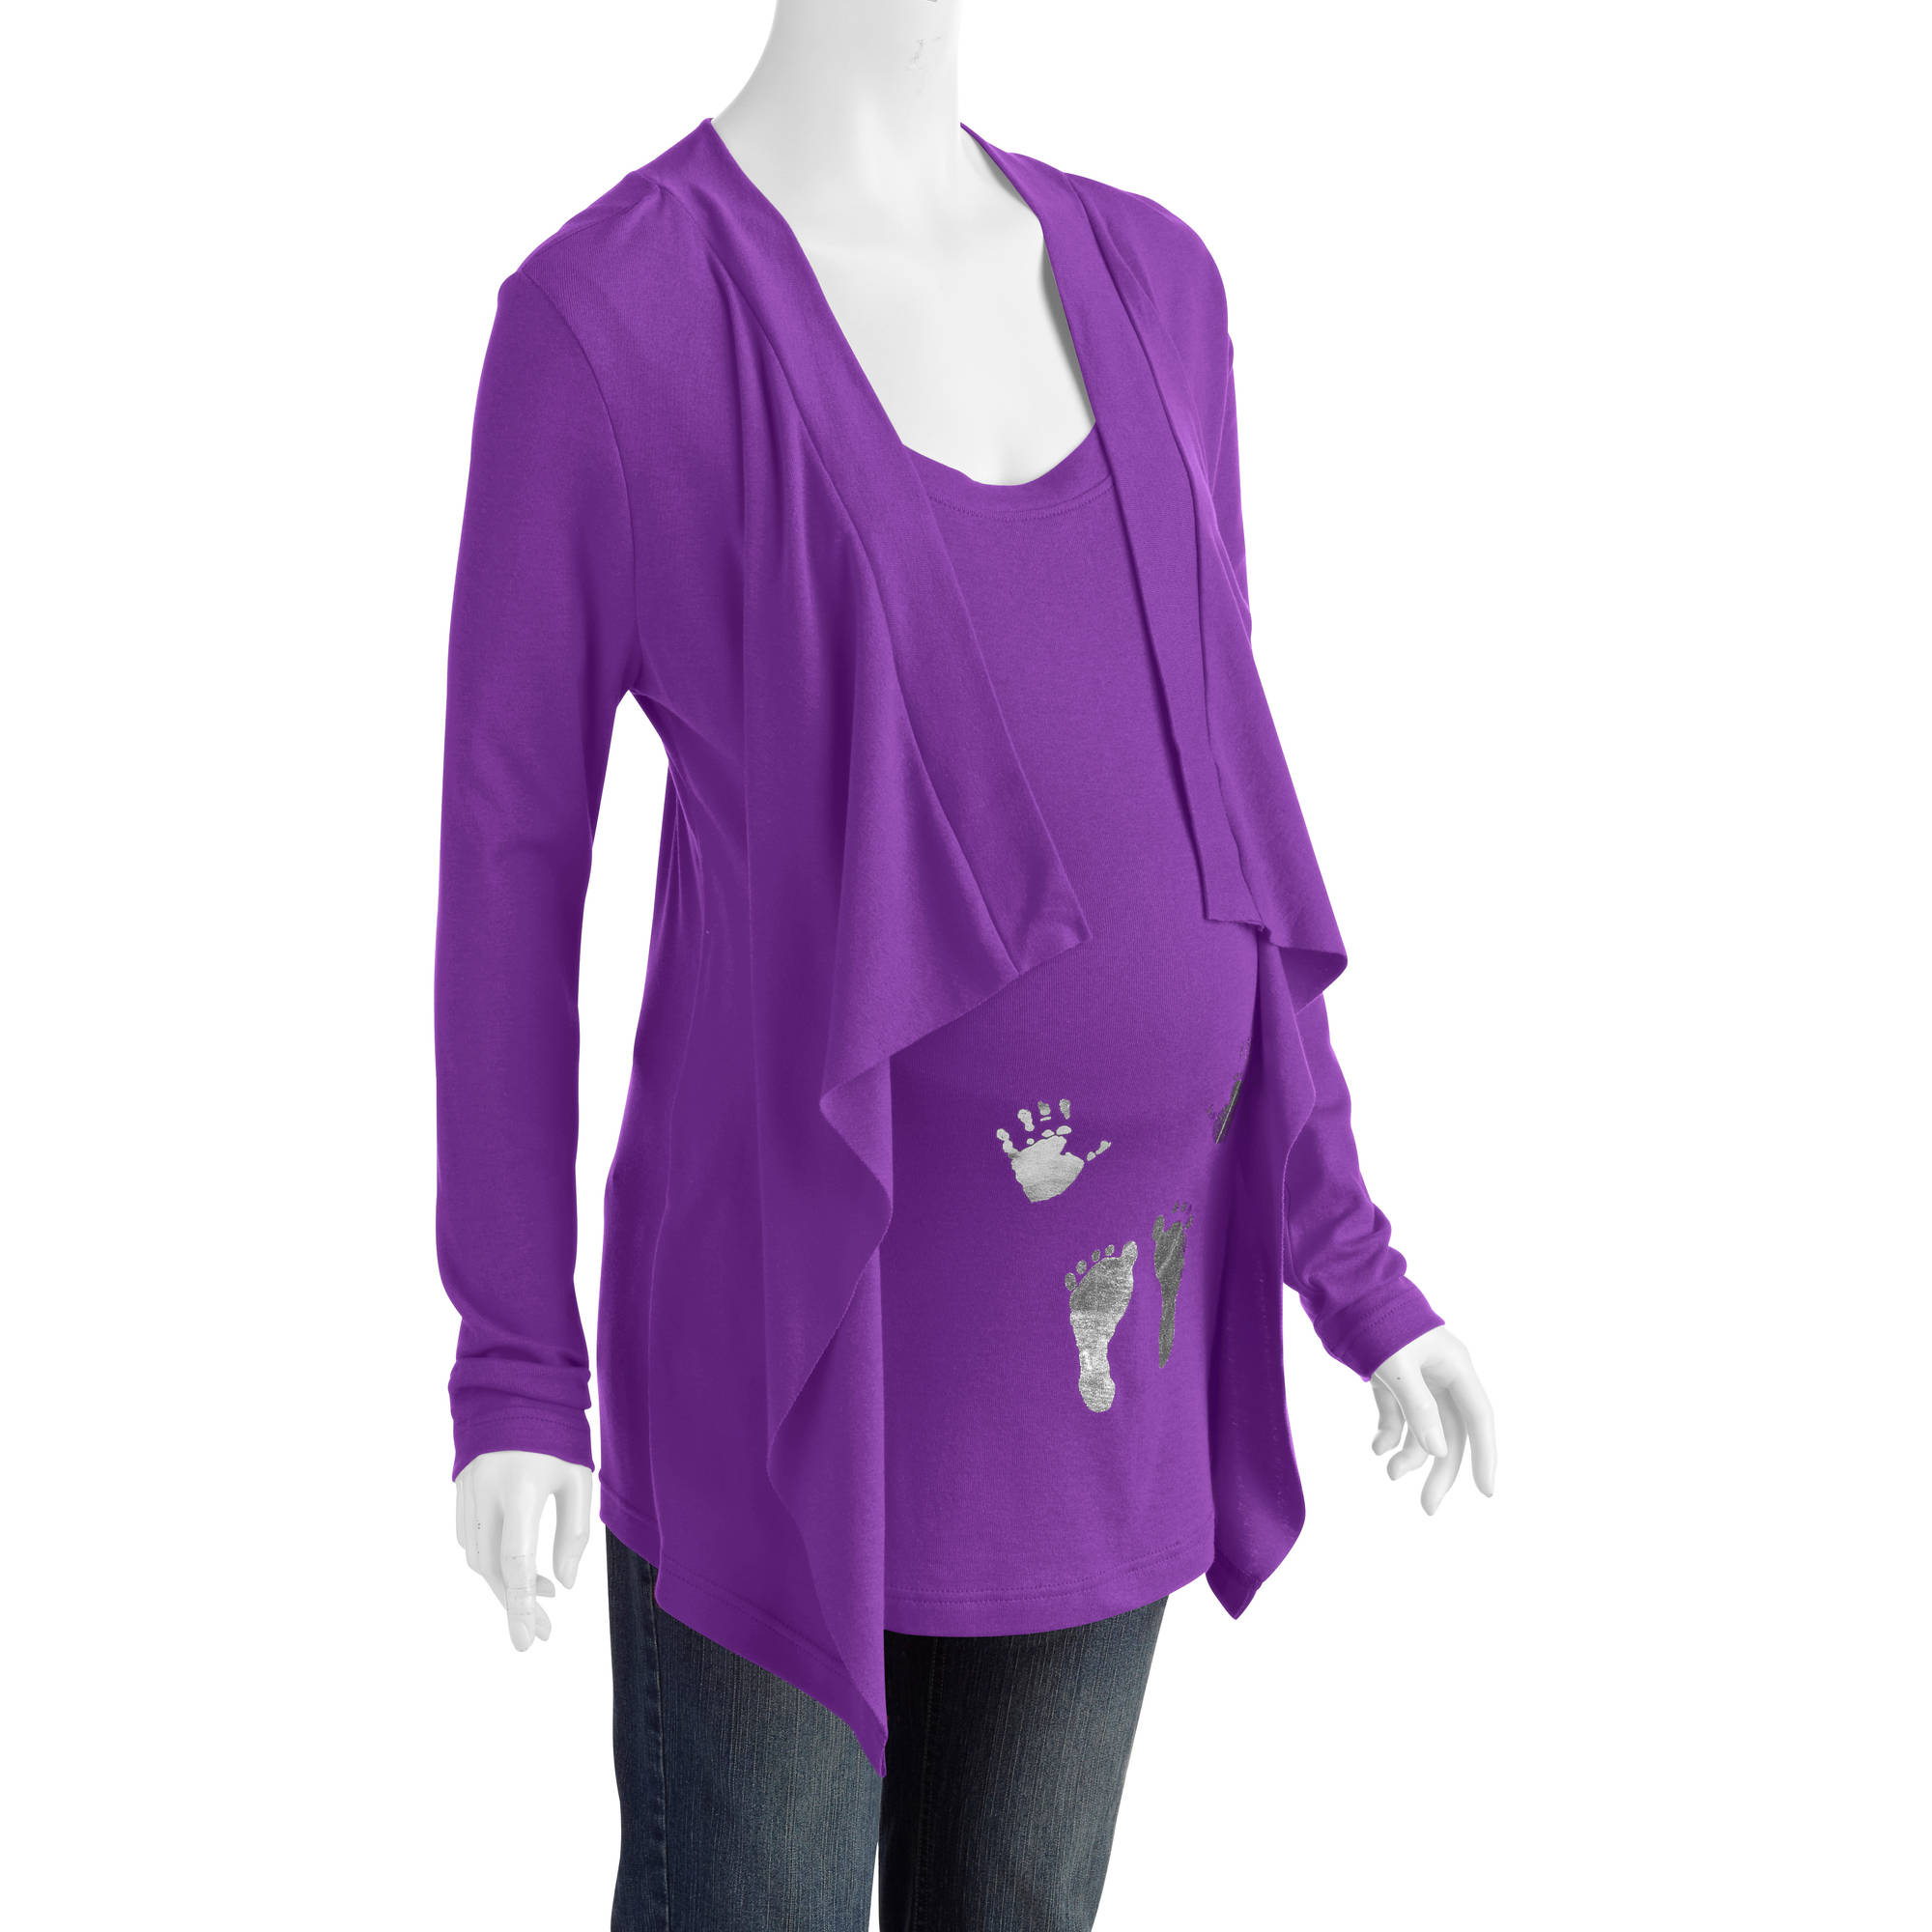 Maternity Hands and Feet Cardigan 2-Fer